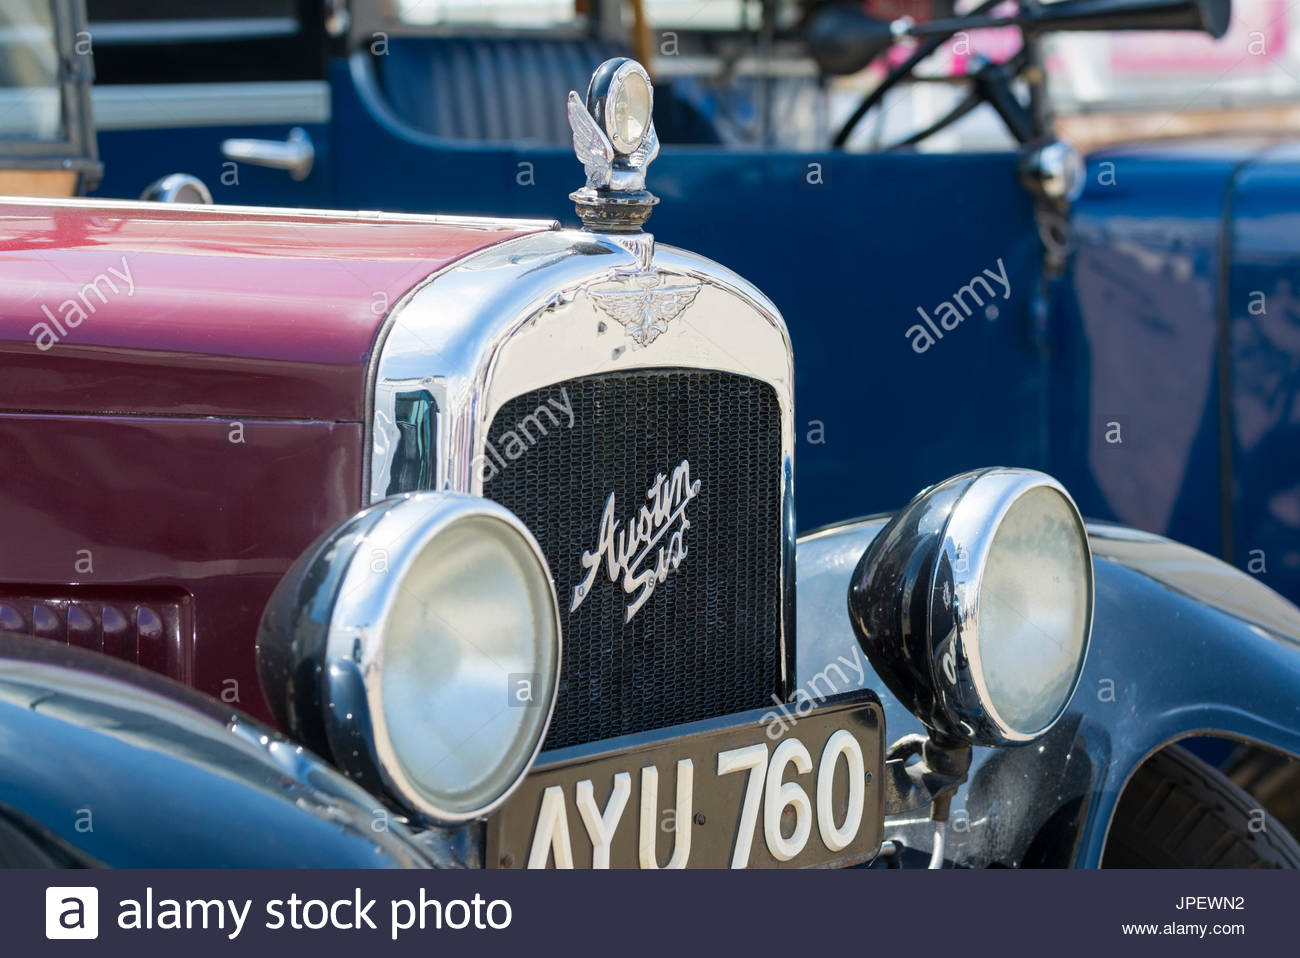 Front of a vintage Austin Six London Taxicab from the 1930s. Austin 15/5 vintage car. - Stock Image